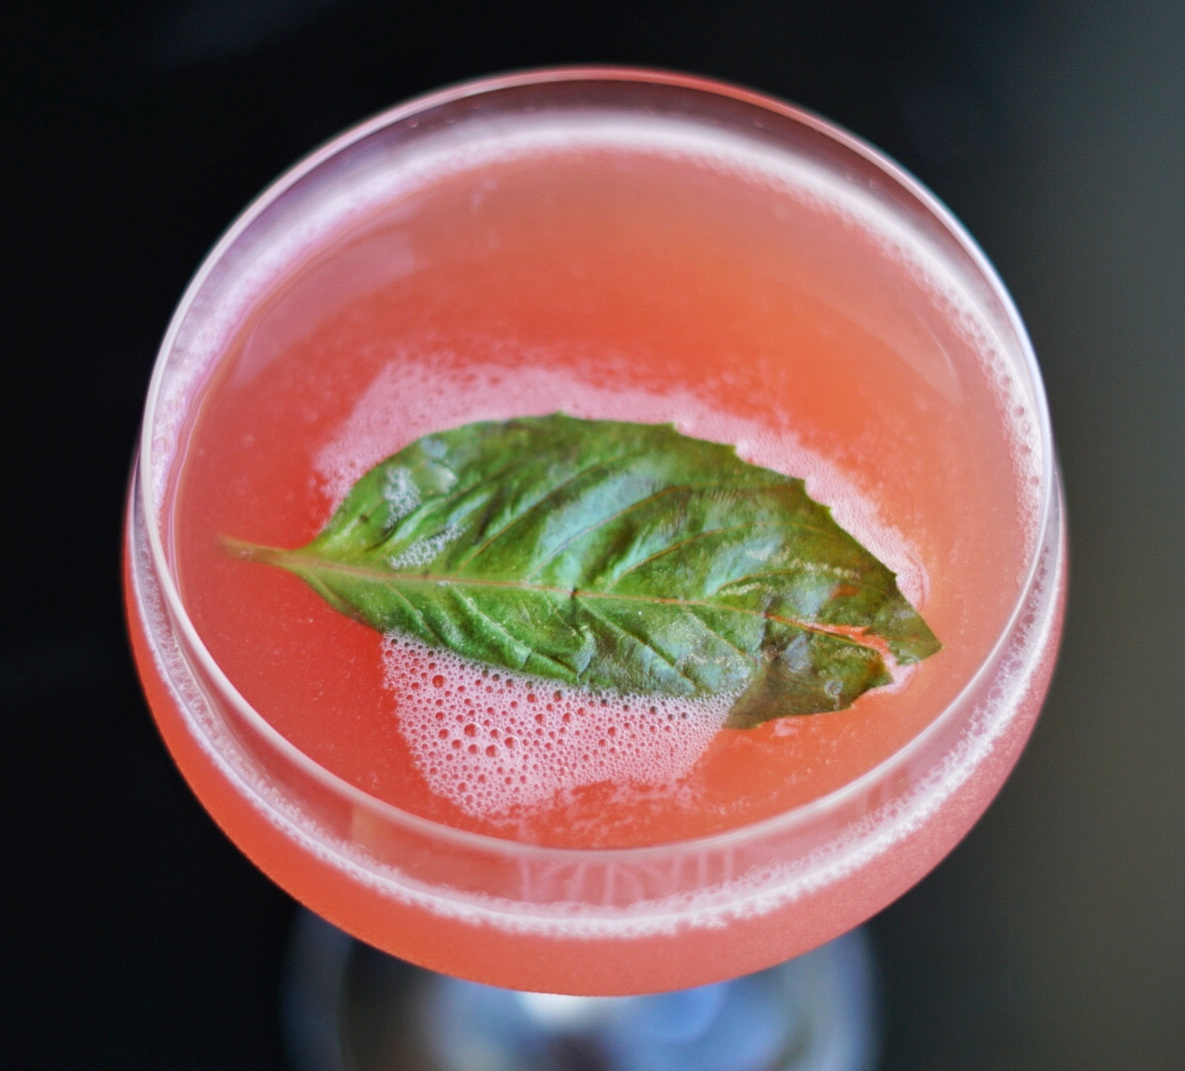 Cucumber Jacques: Cucumber infused gin, St. Germain, fresh watermelon juice, homemade basil syrup.